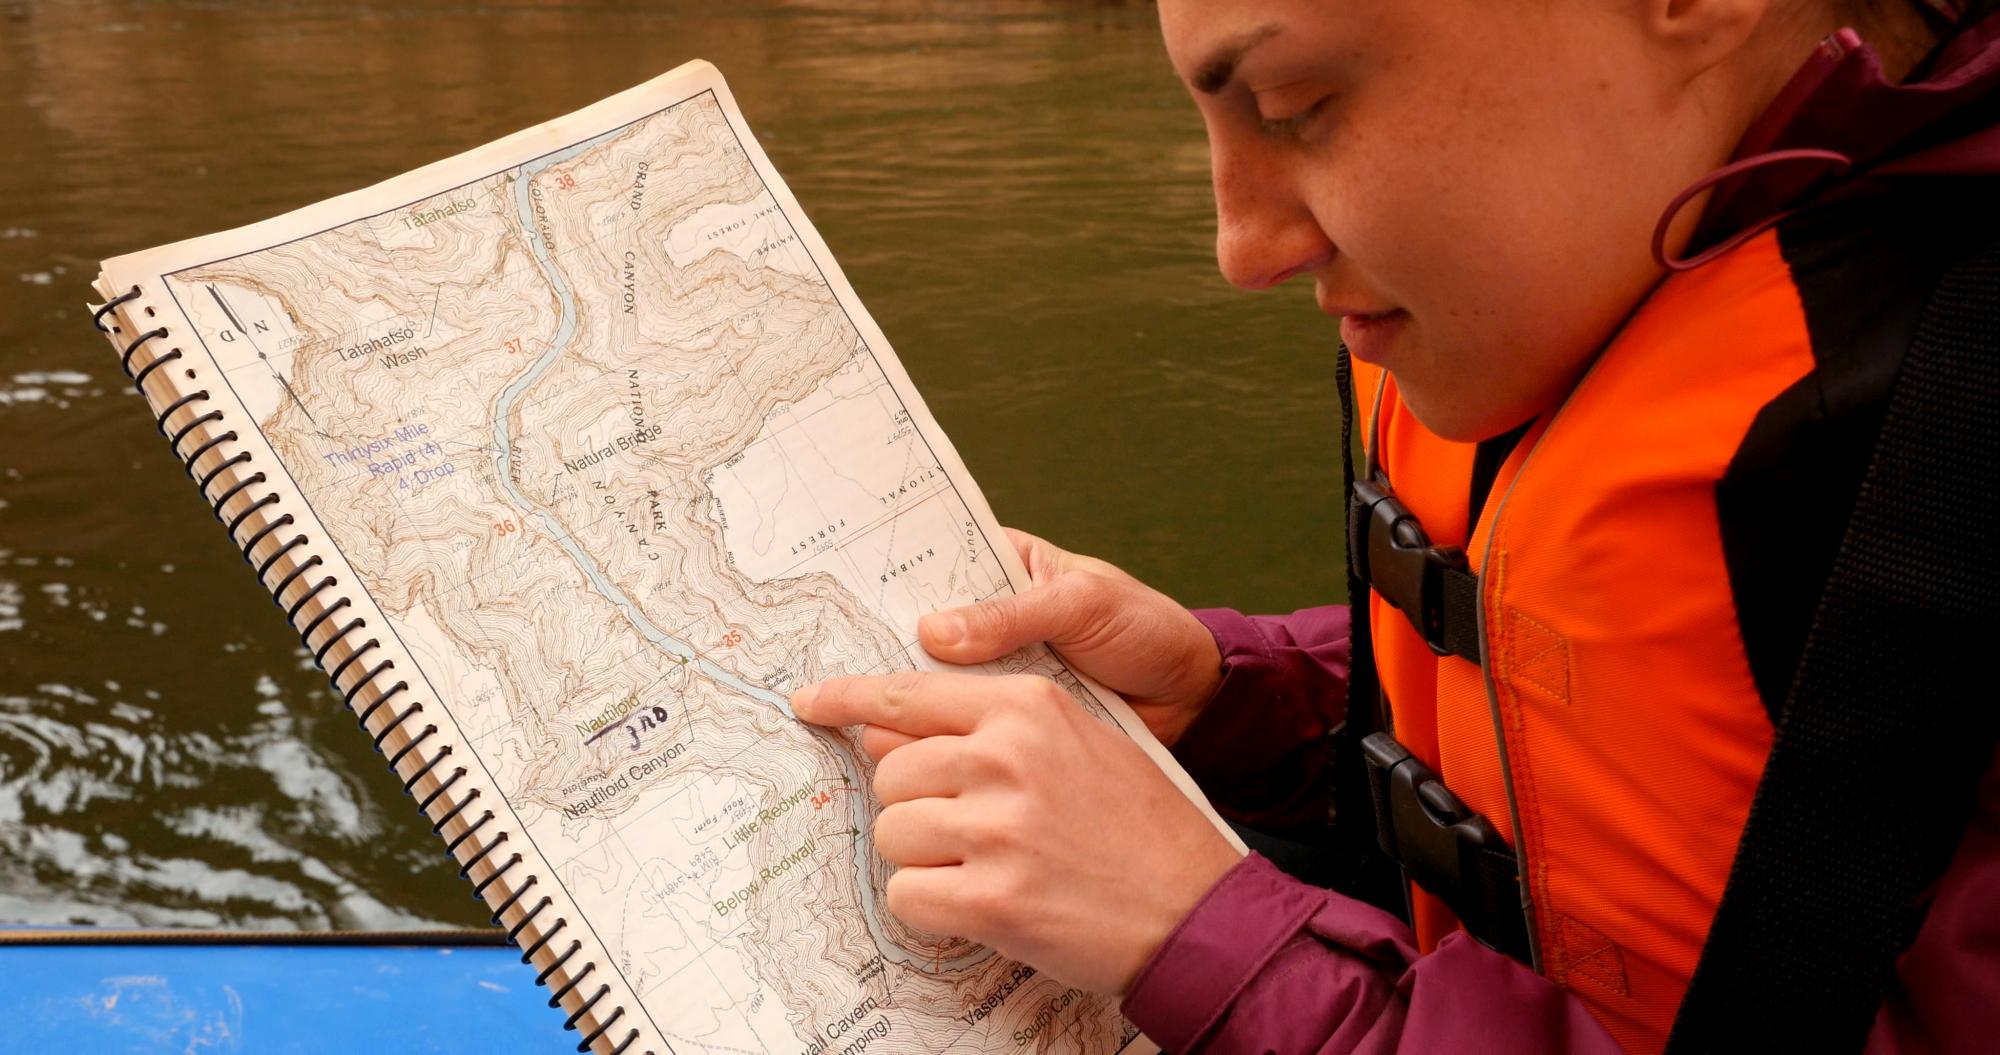 Woman looks at map of Colorado River while on a river raft